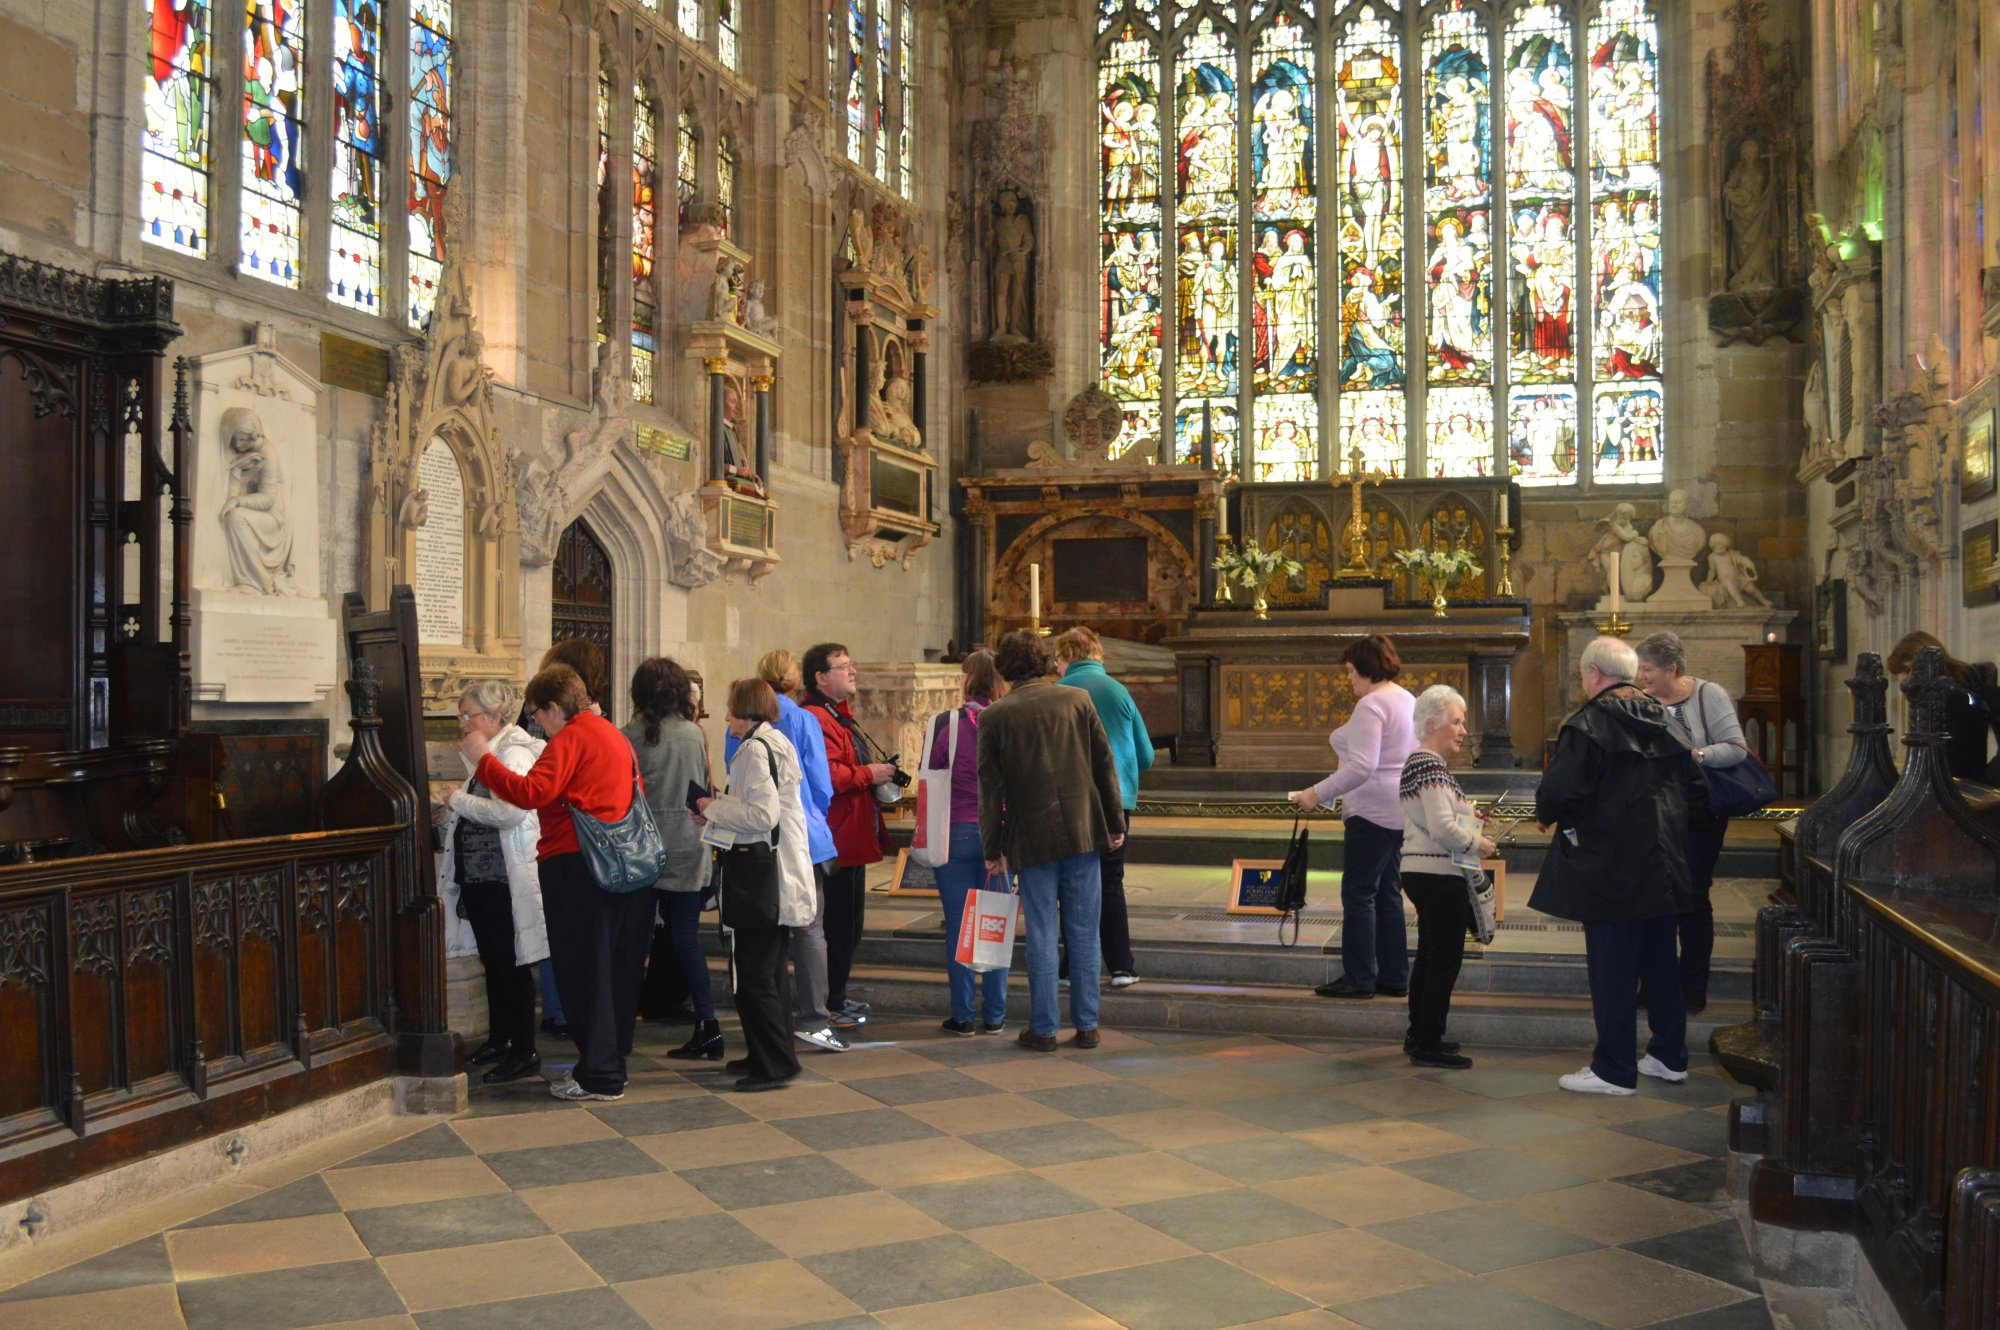 Inside Holy trinity Church, Stratford